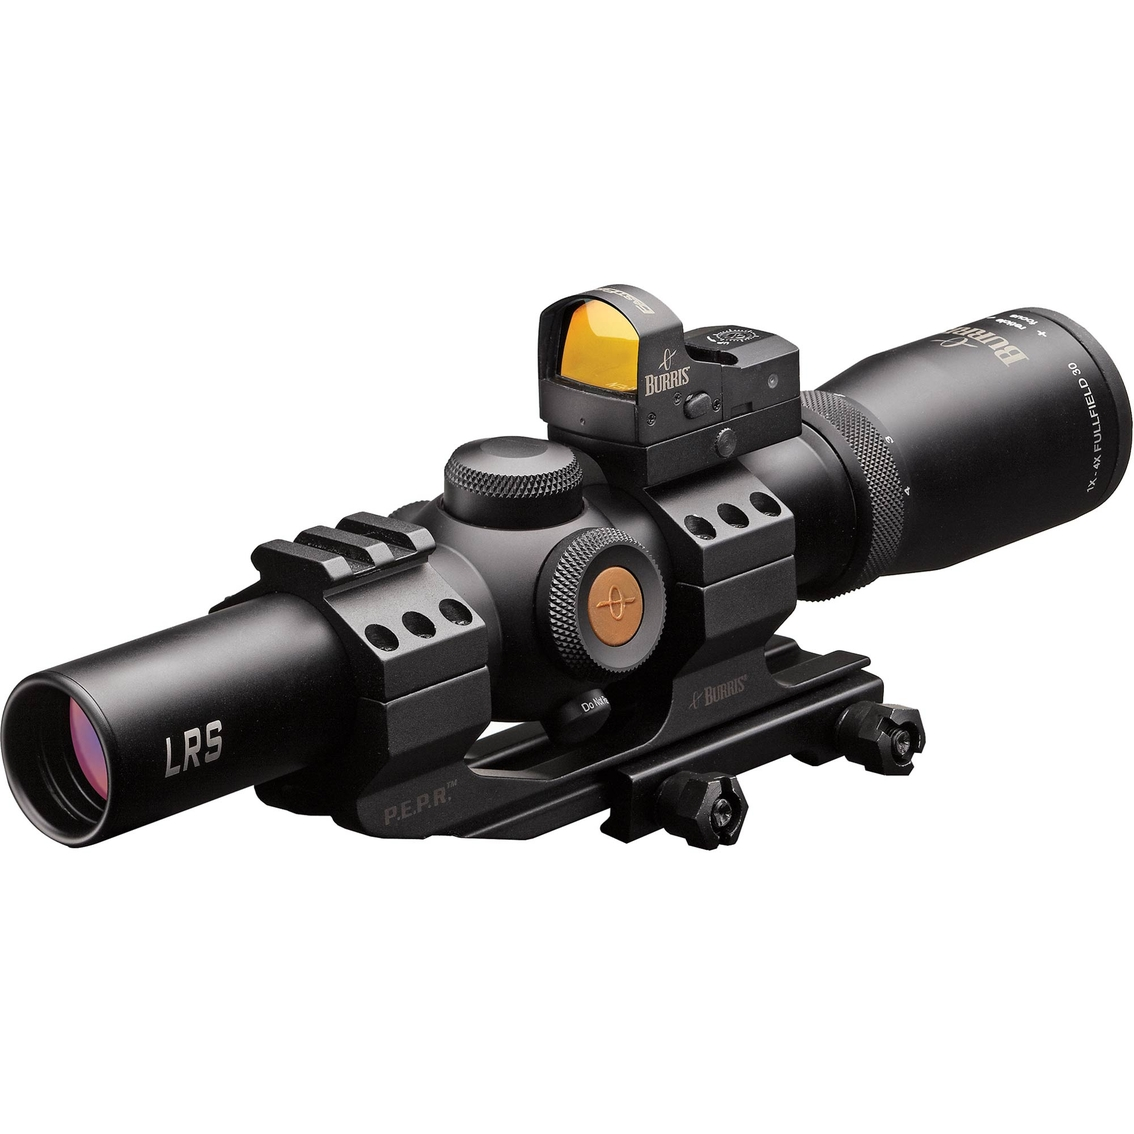 Burris Mtac Rifle Scope 1 4x24 With Fastfire Iii And Mount Scopes